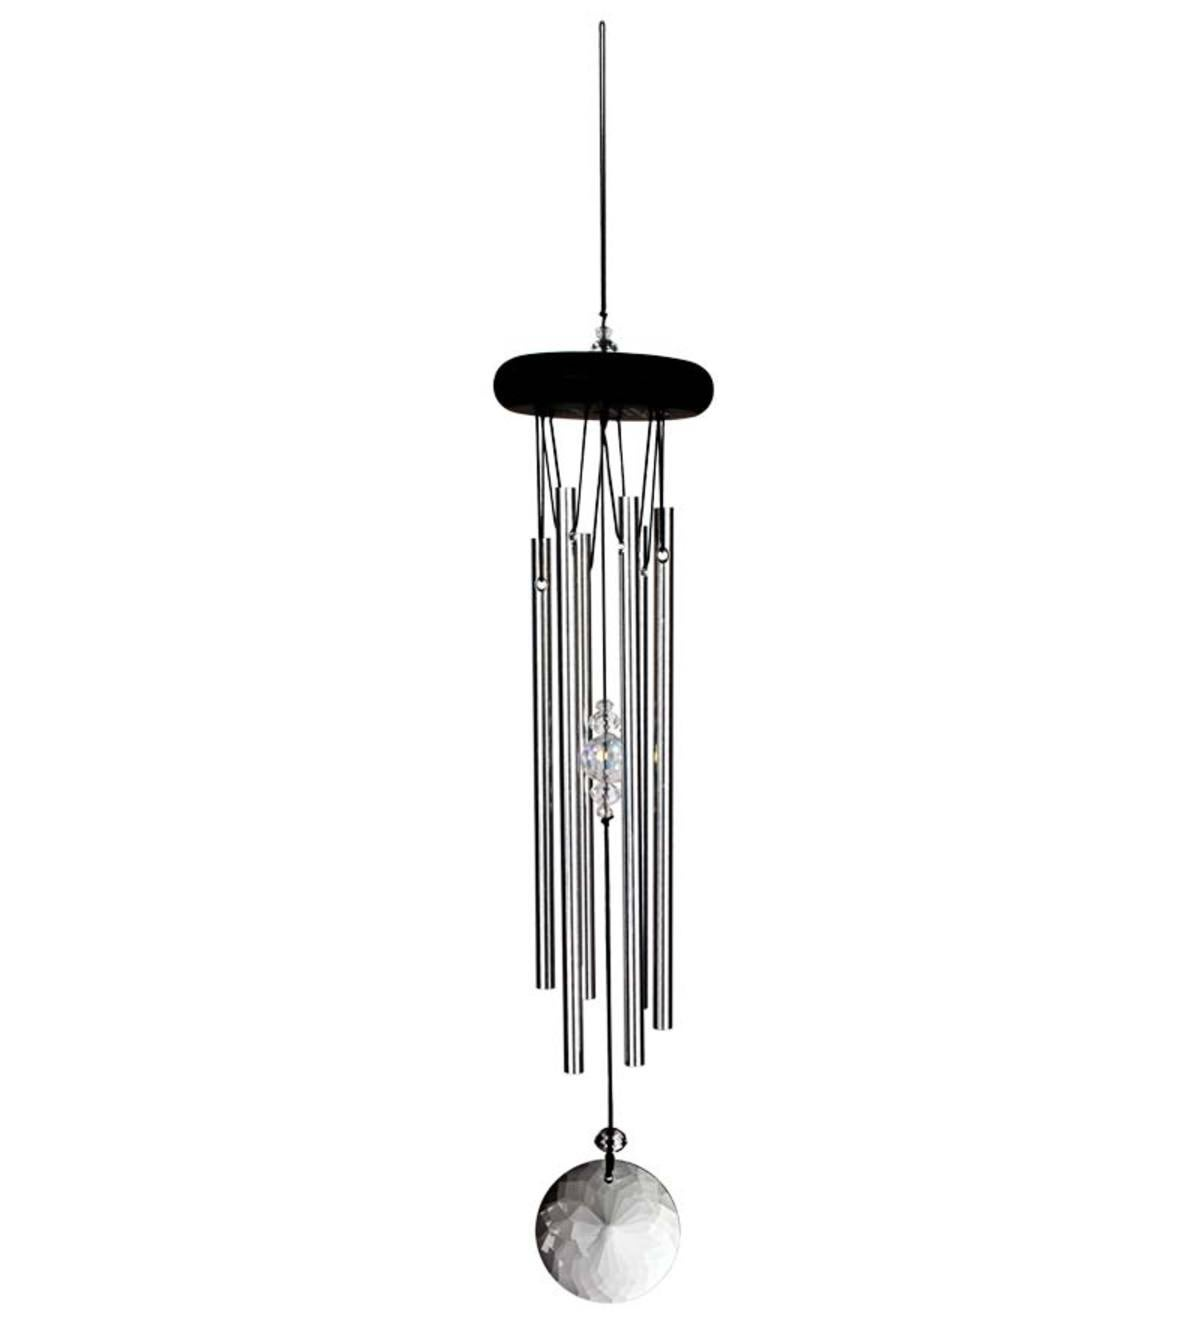 Meditation Wind Chimes with Crystal Accents